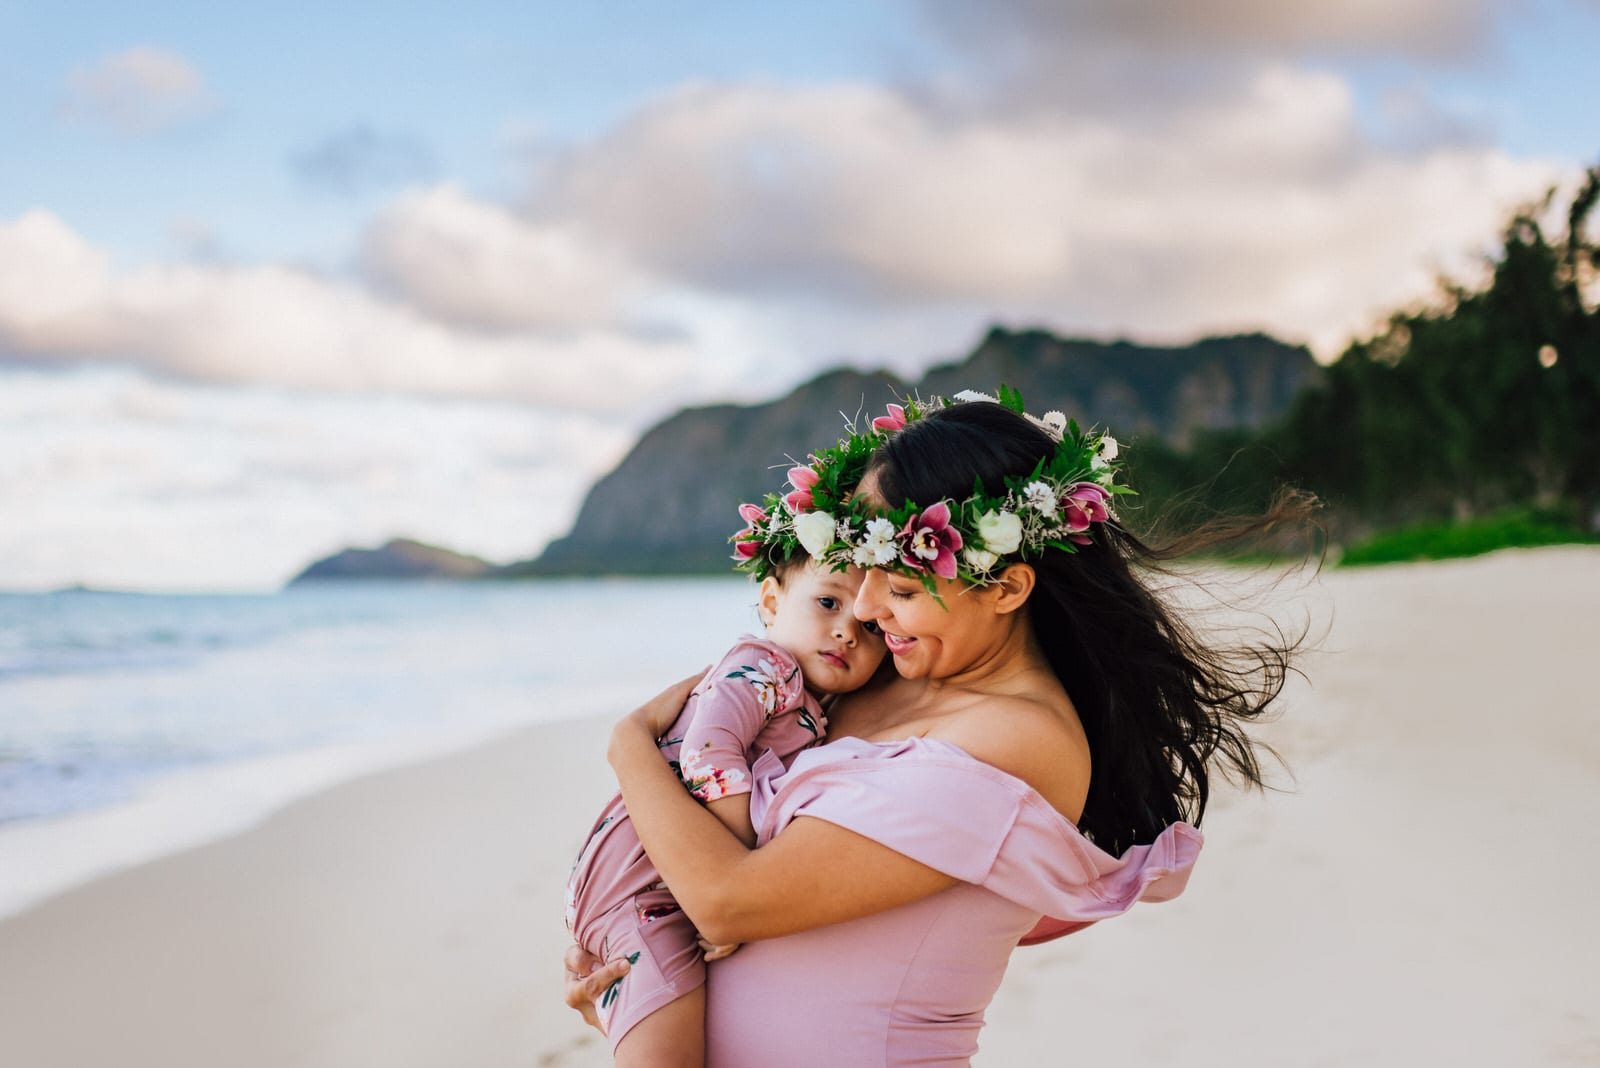 oahu-photographer-family-aulani-resort-11.jpg